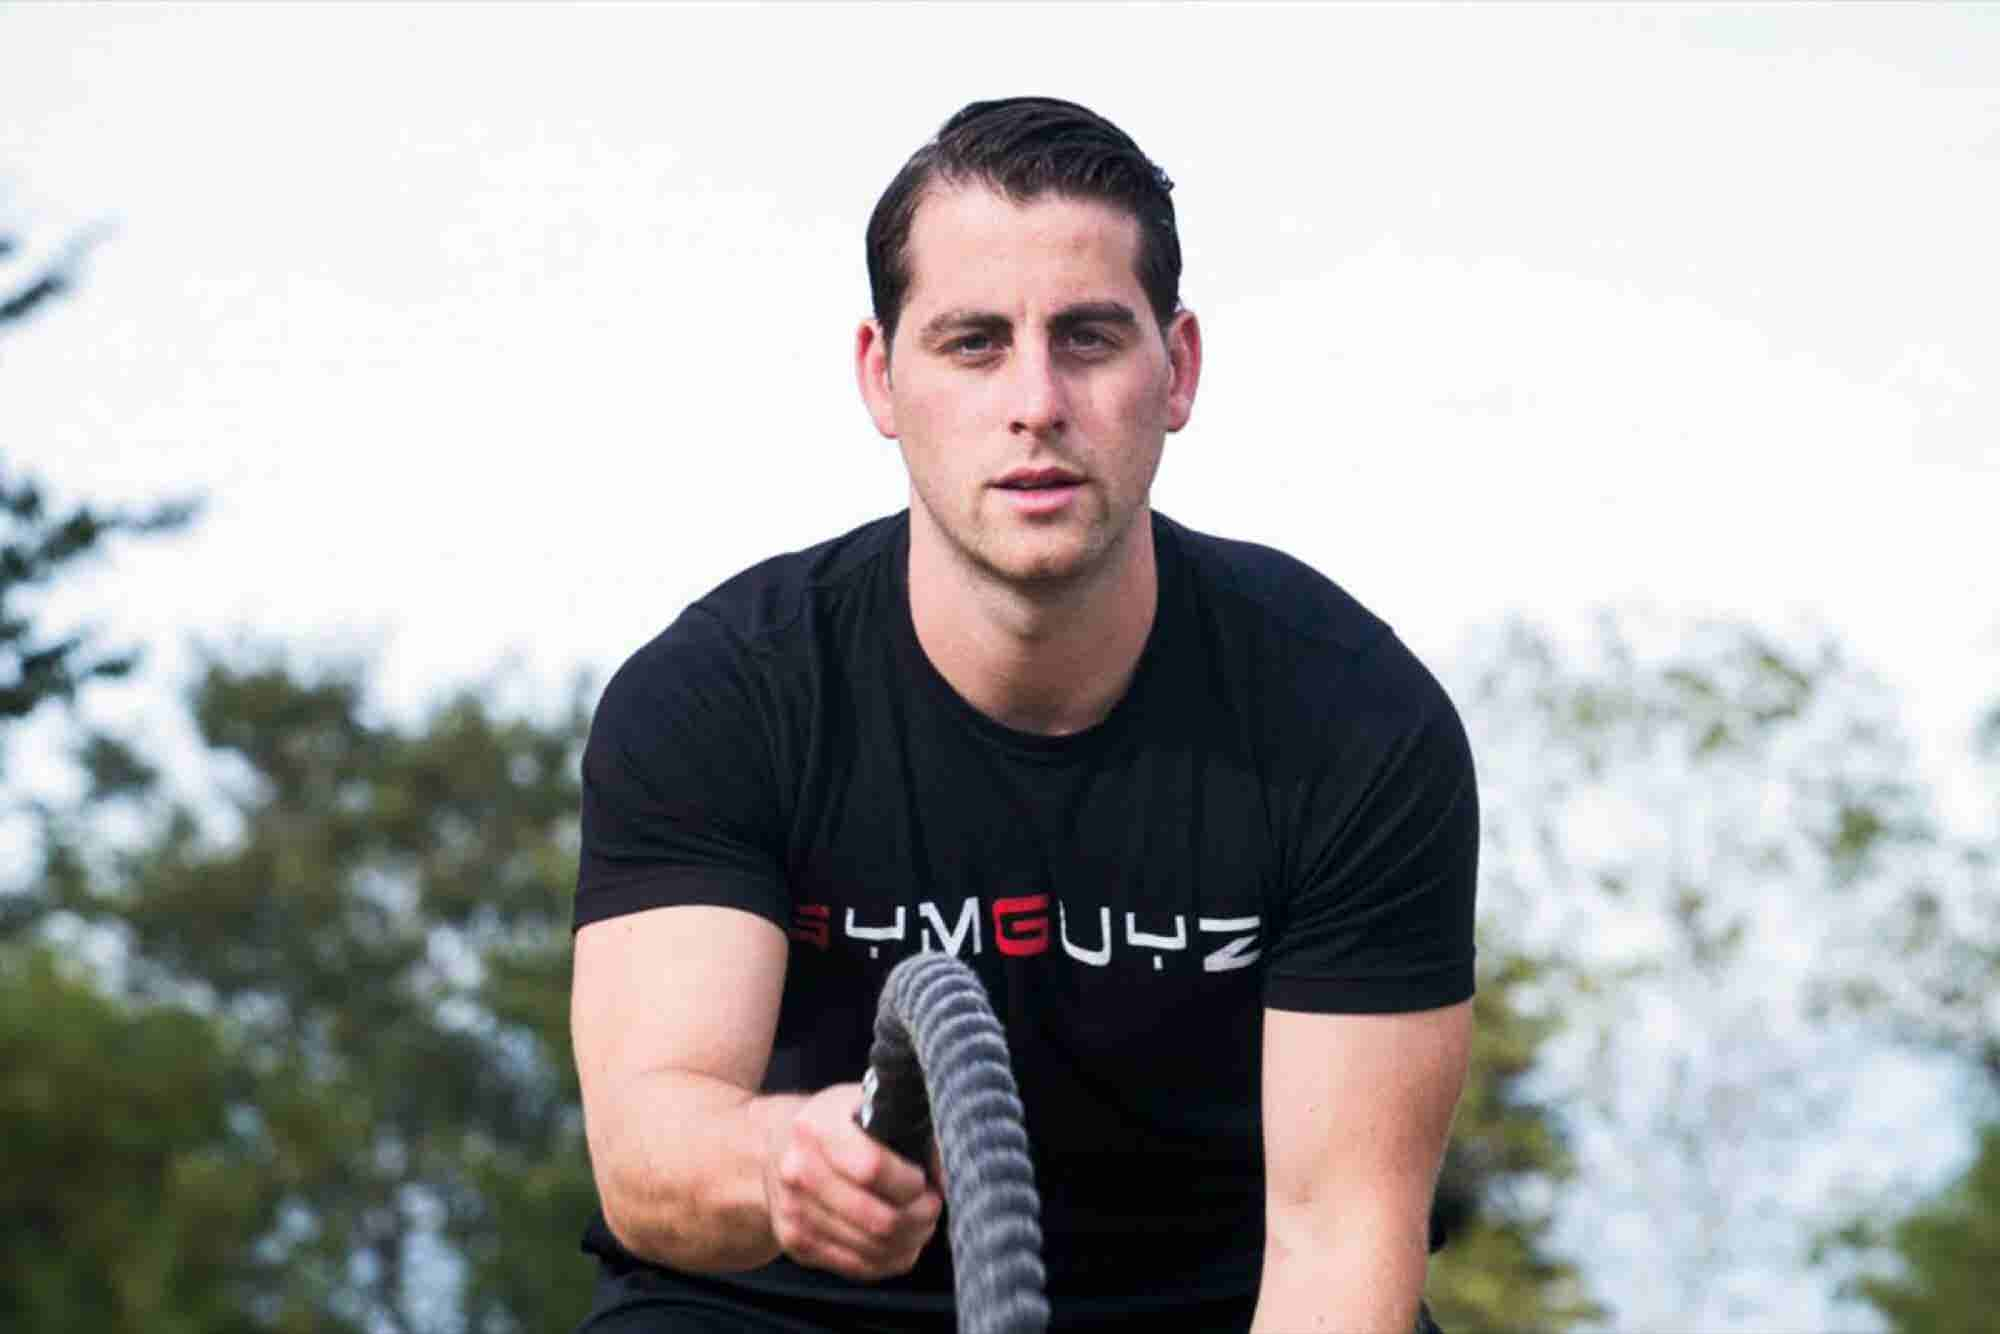 Career Change: How I Ended Up Opening a Personal-Training Franchise